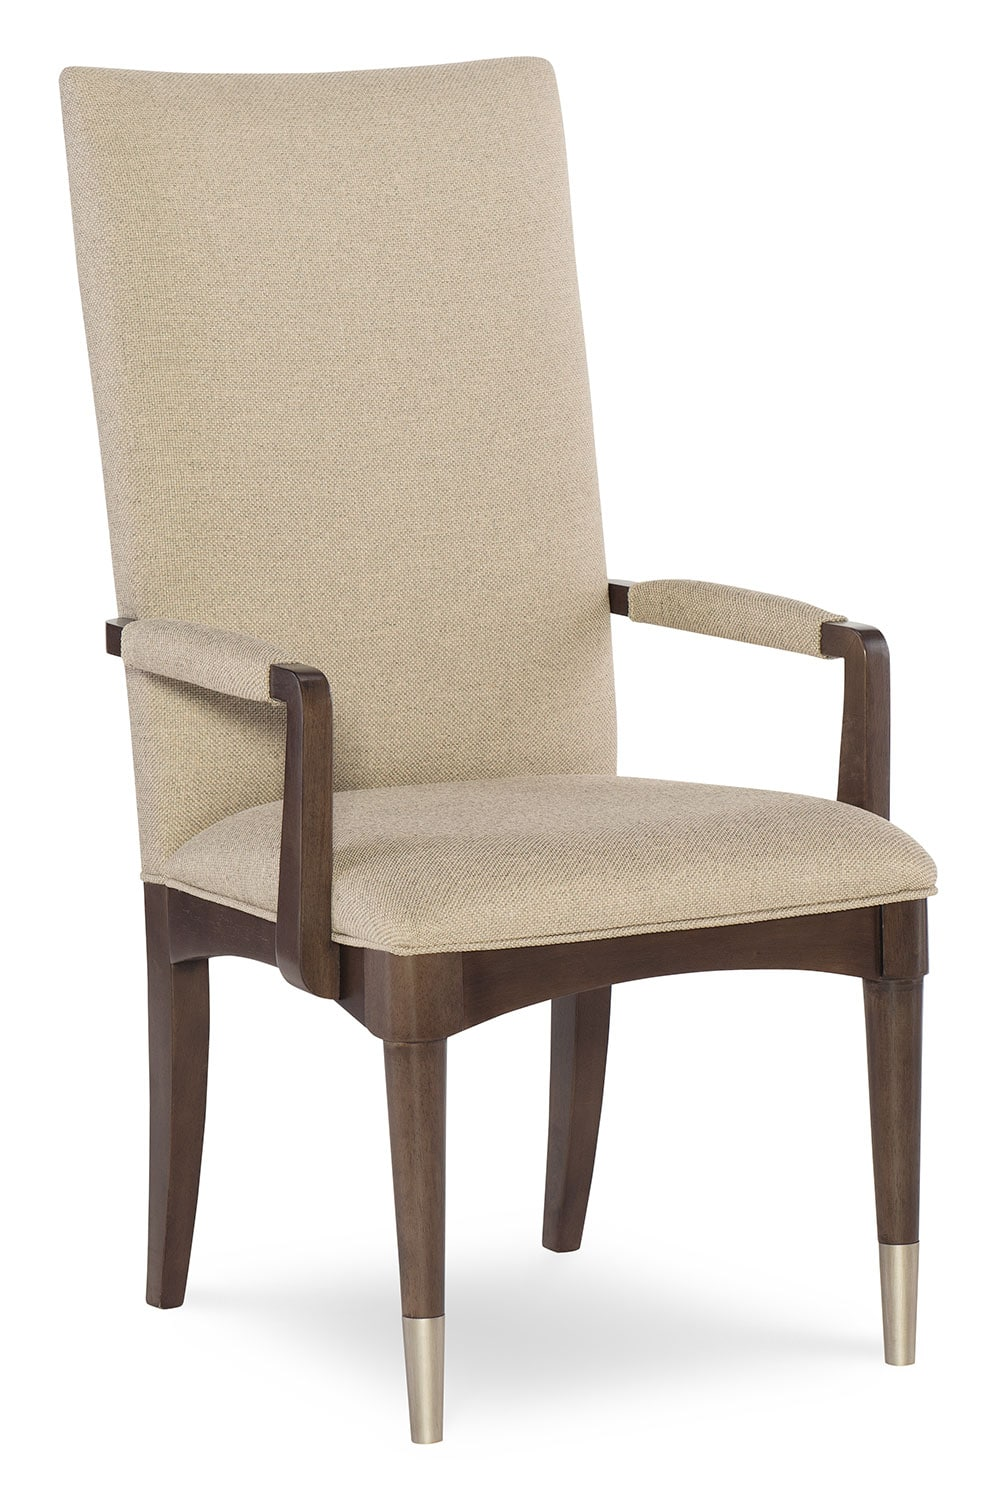 Rachael Ray Upholstered Arm Chair - Ash Brown